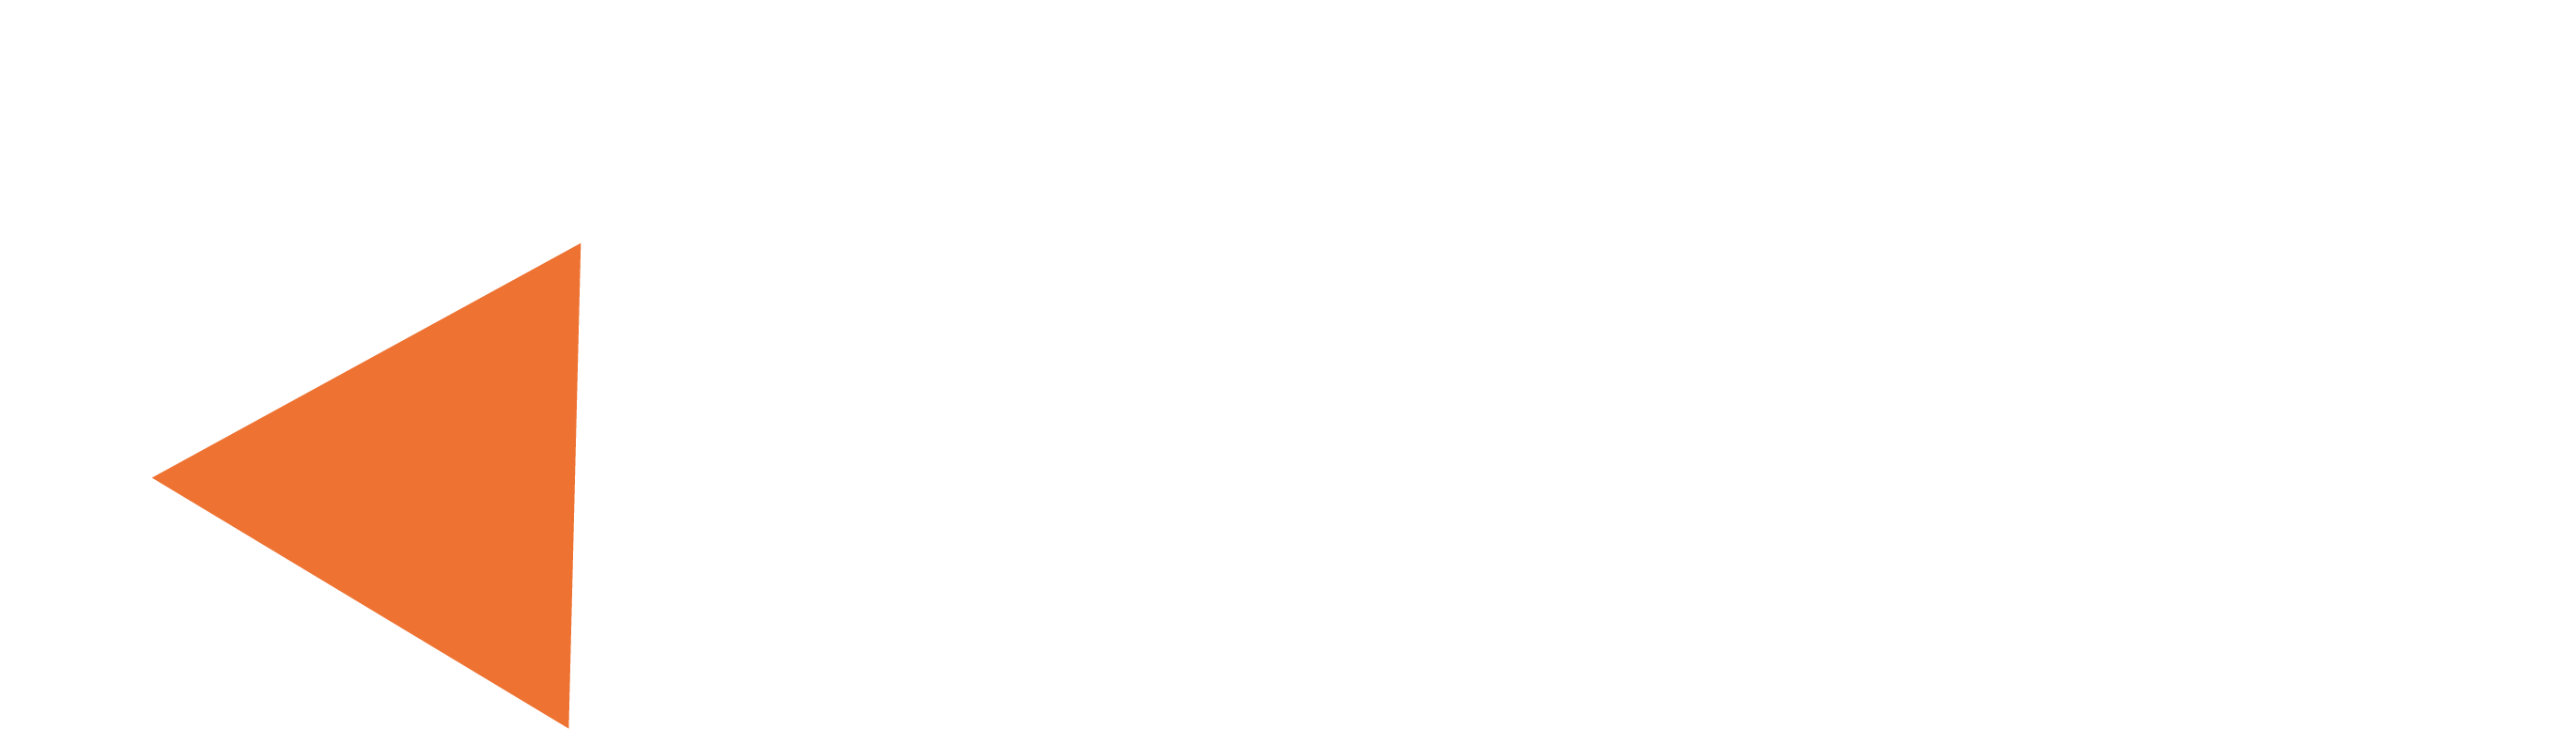 Armour Installations